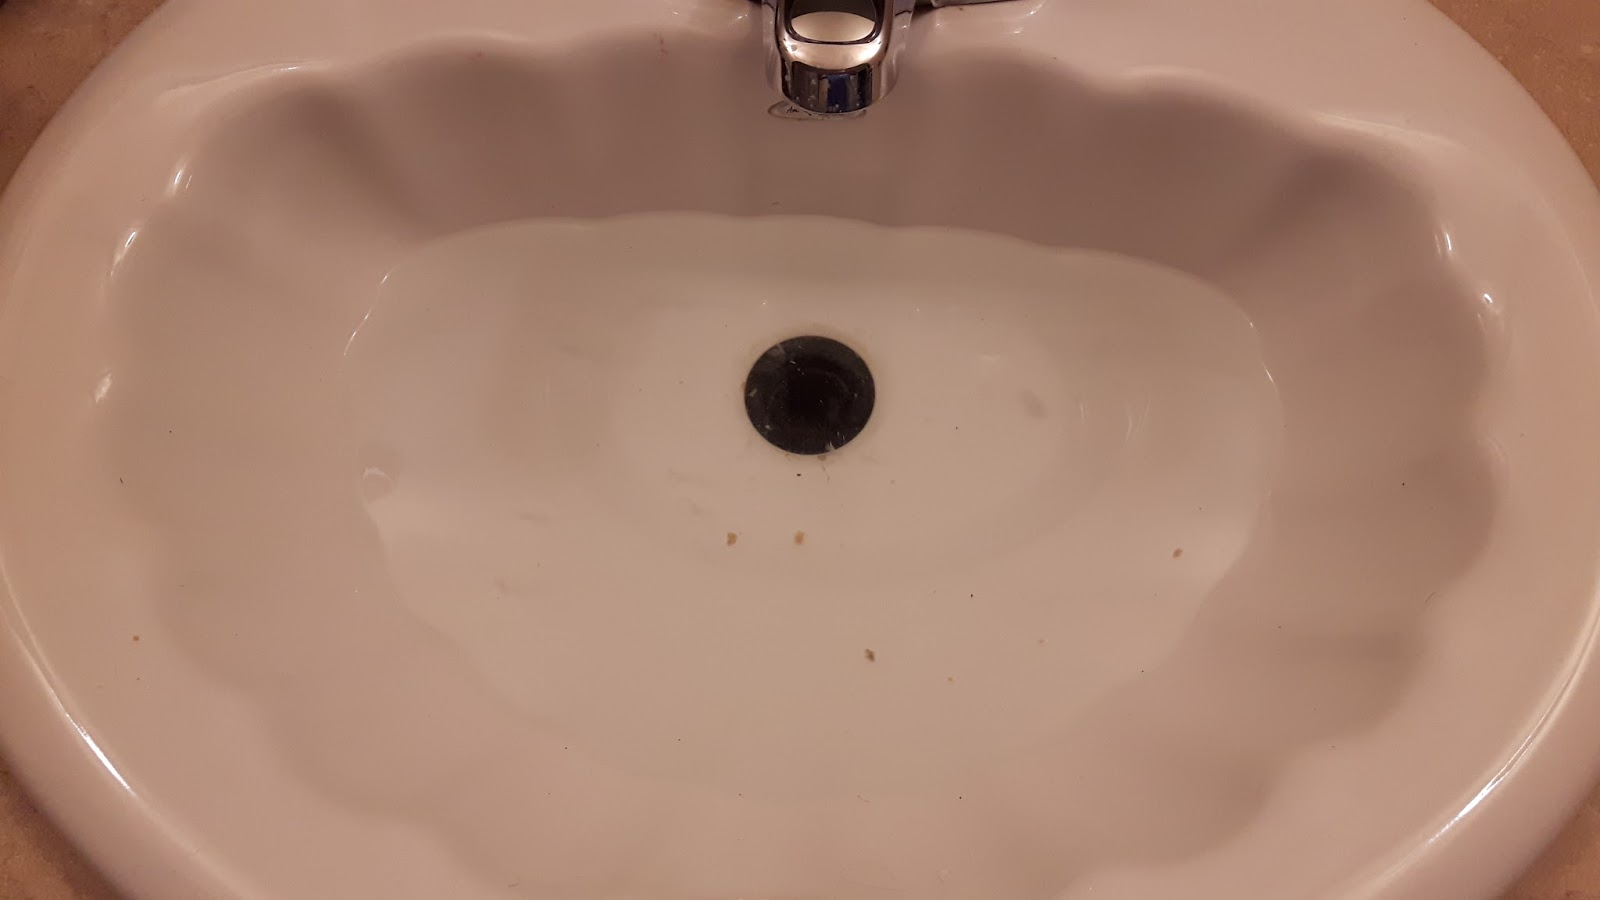 How To Unclog A Bathroom Sink Common Plumbing Problems And Solutions